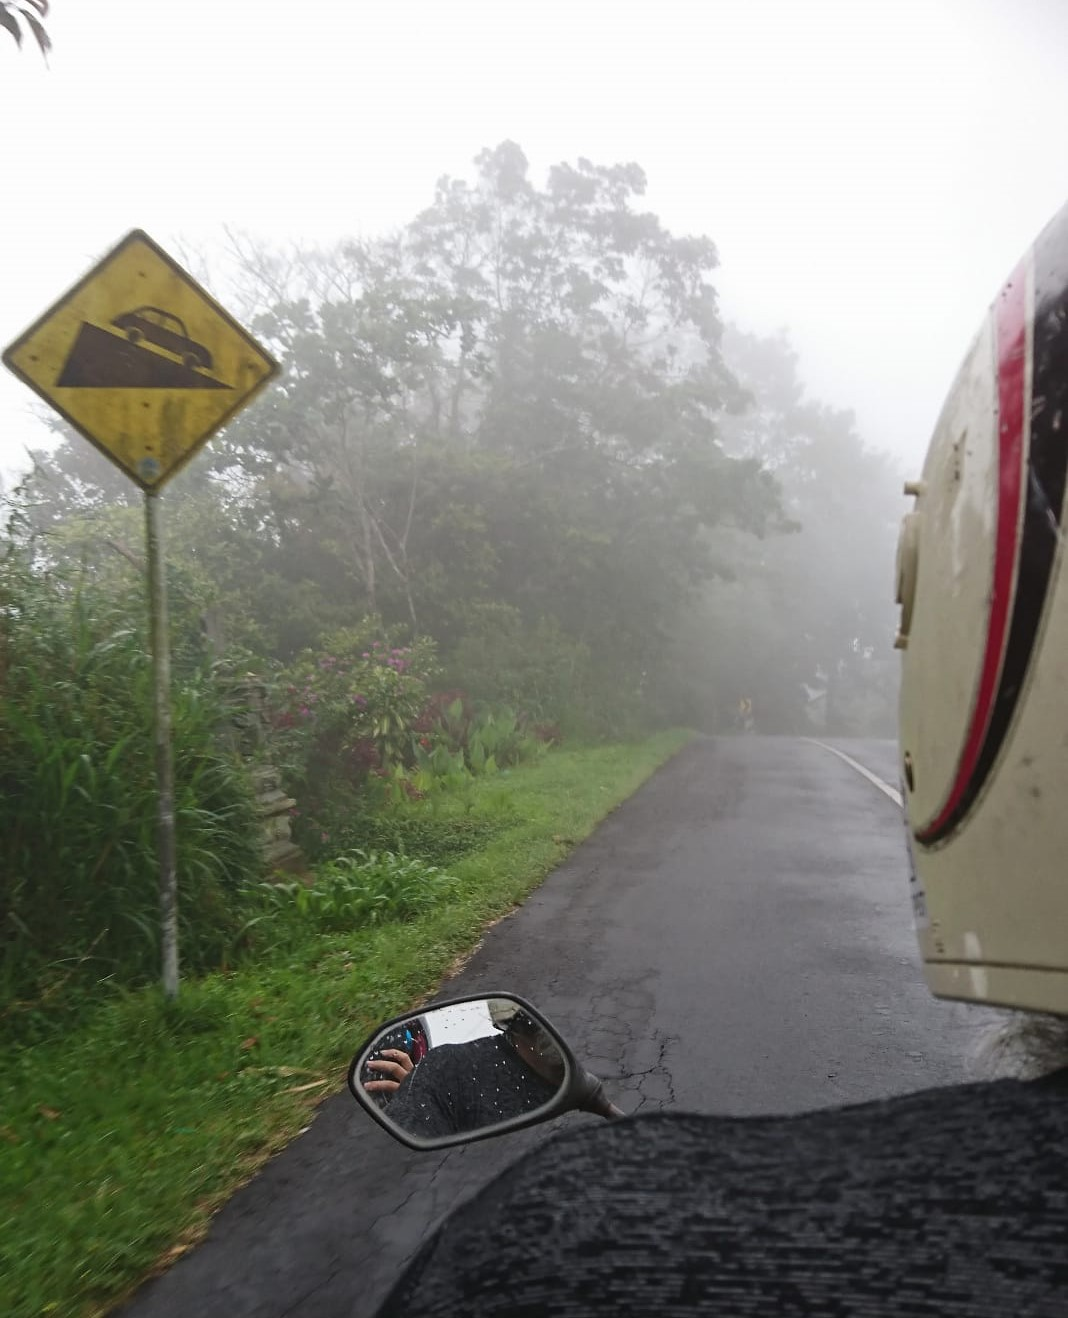 A scooter ride from a misty road between ubud and Lovina. Warning, steep descent.